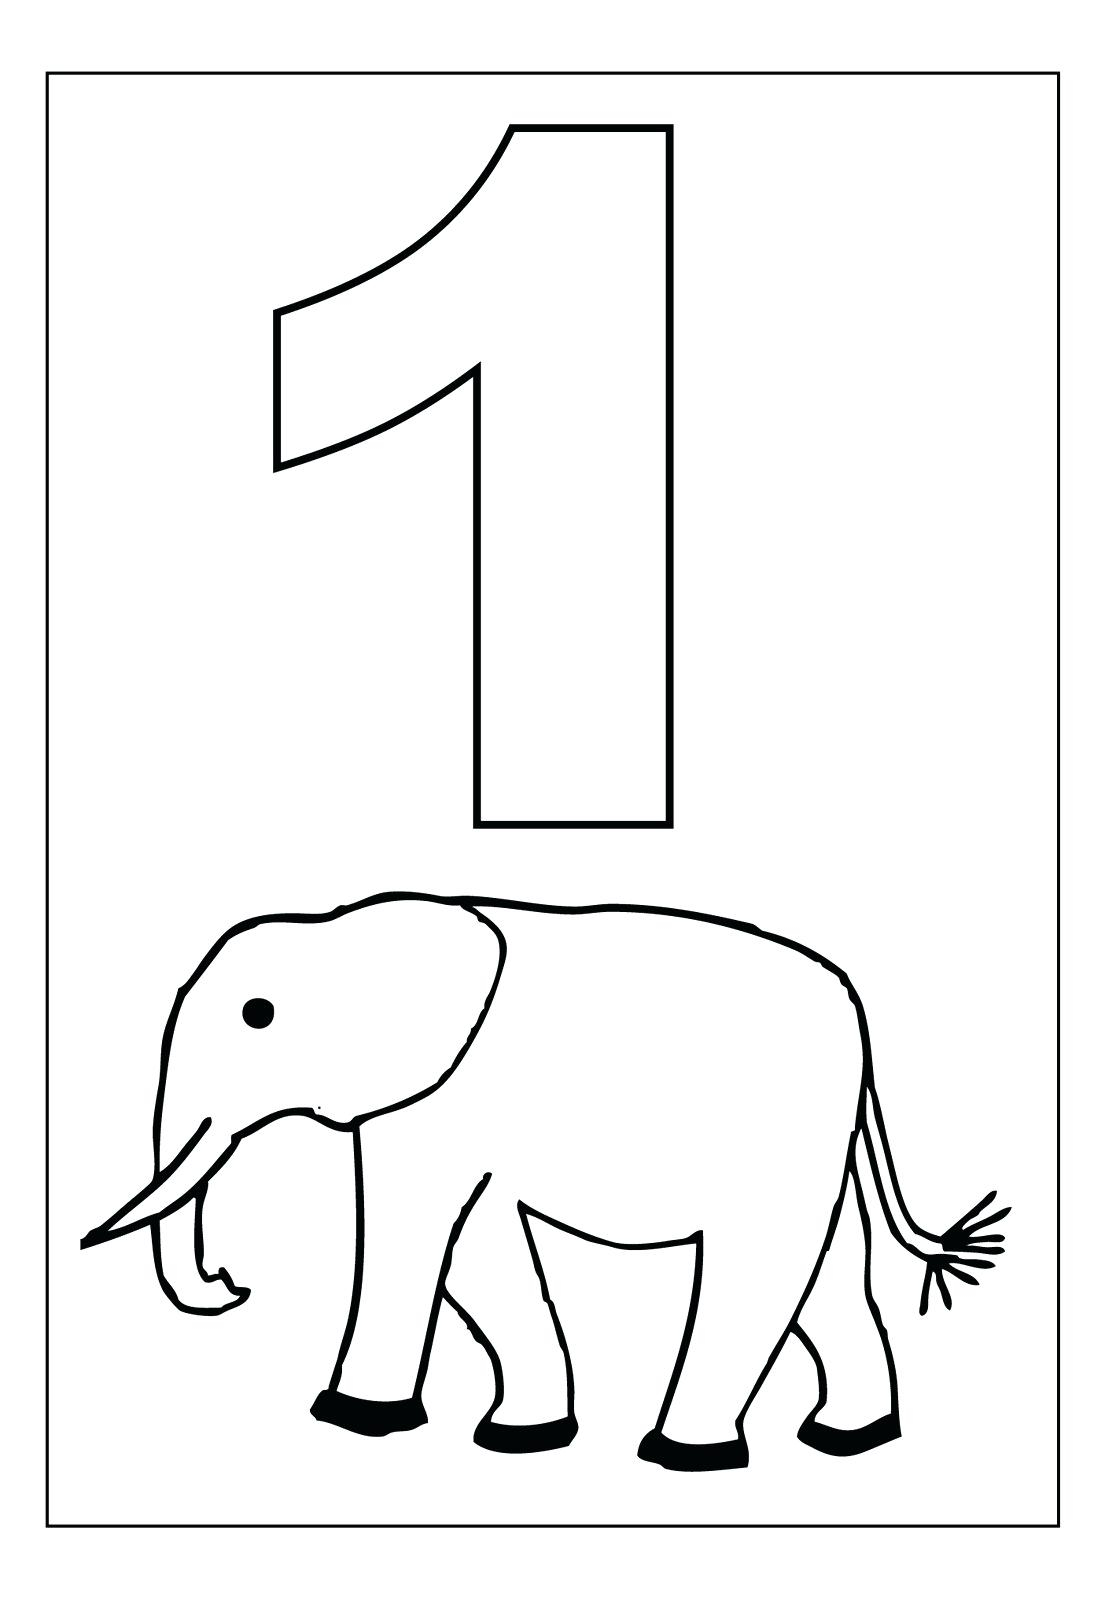 Number 6 Coloring Page Coloring Number 6 Proteussheetco